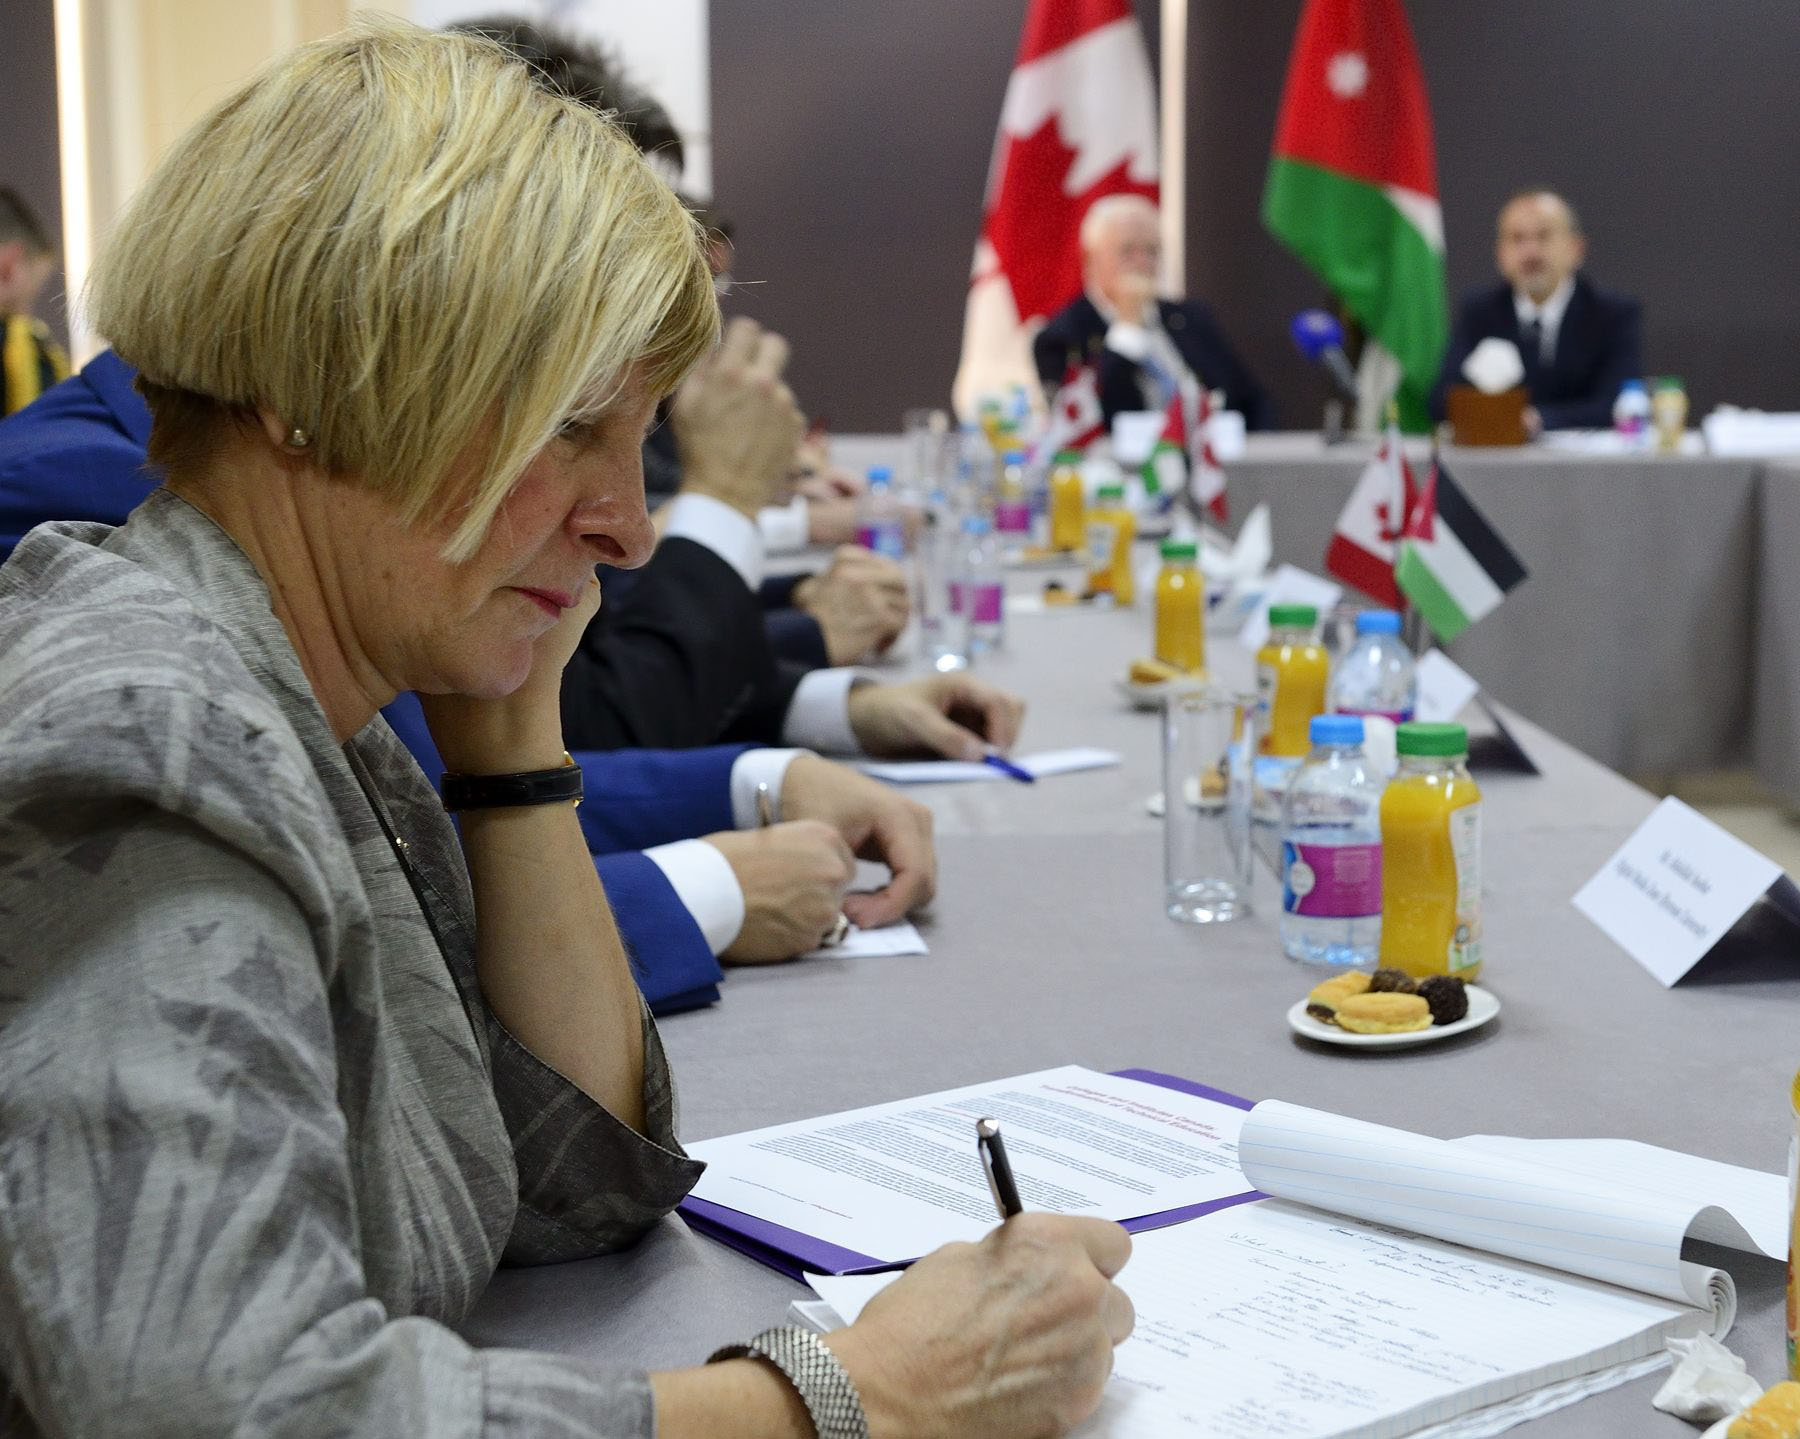 Canadian delegate Denise Amyot, President and Chief Executive Officer of Colleges and Institutes Canada attended the meeting.